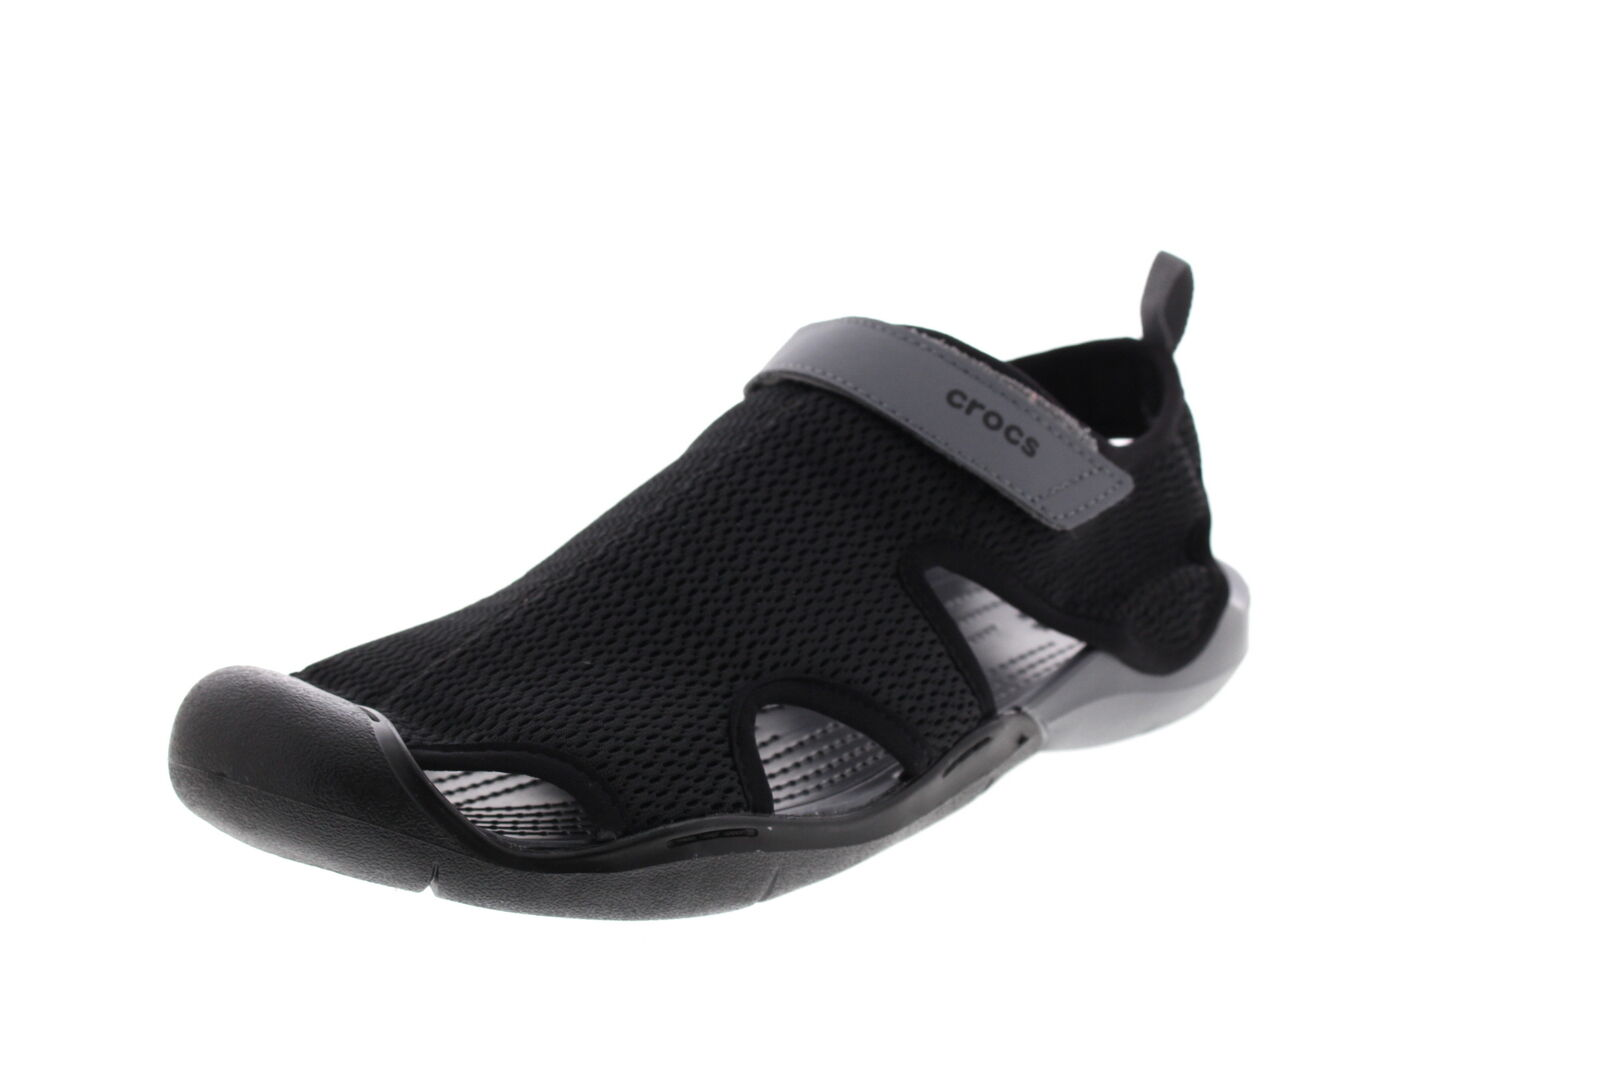 Crocs chaussures Femme Swiftwater Maille Sandales noir Anthracite